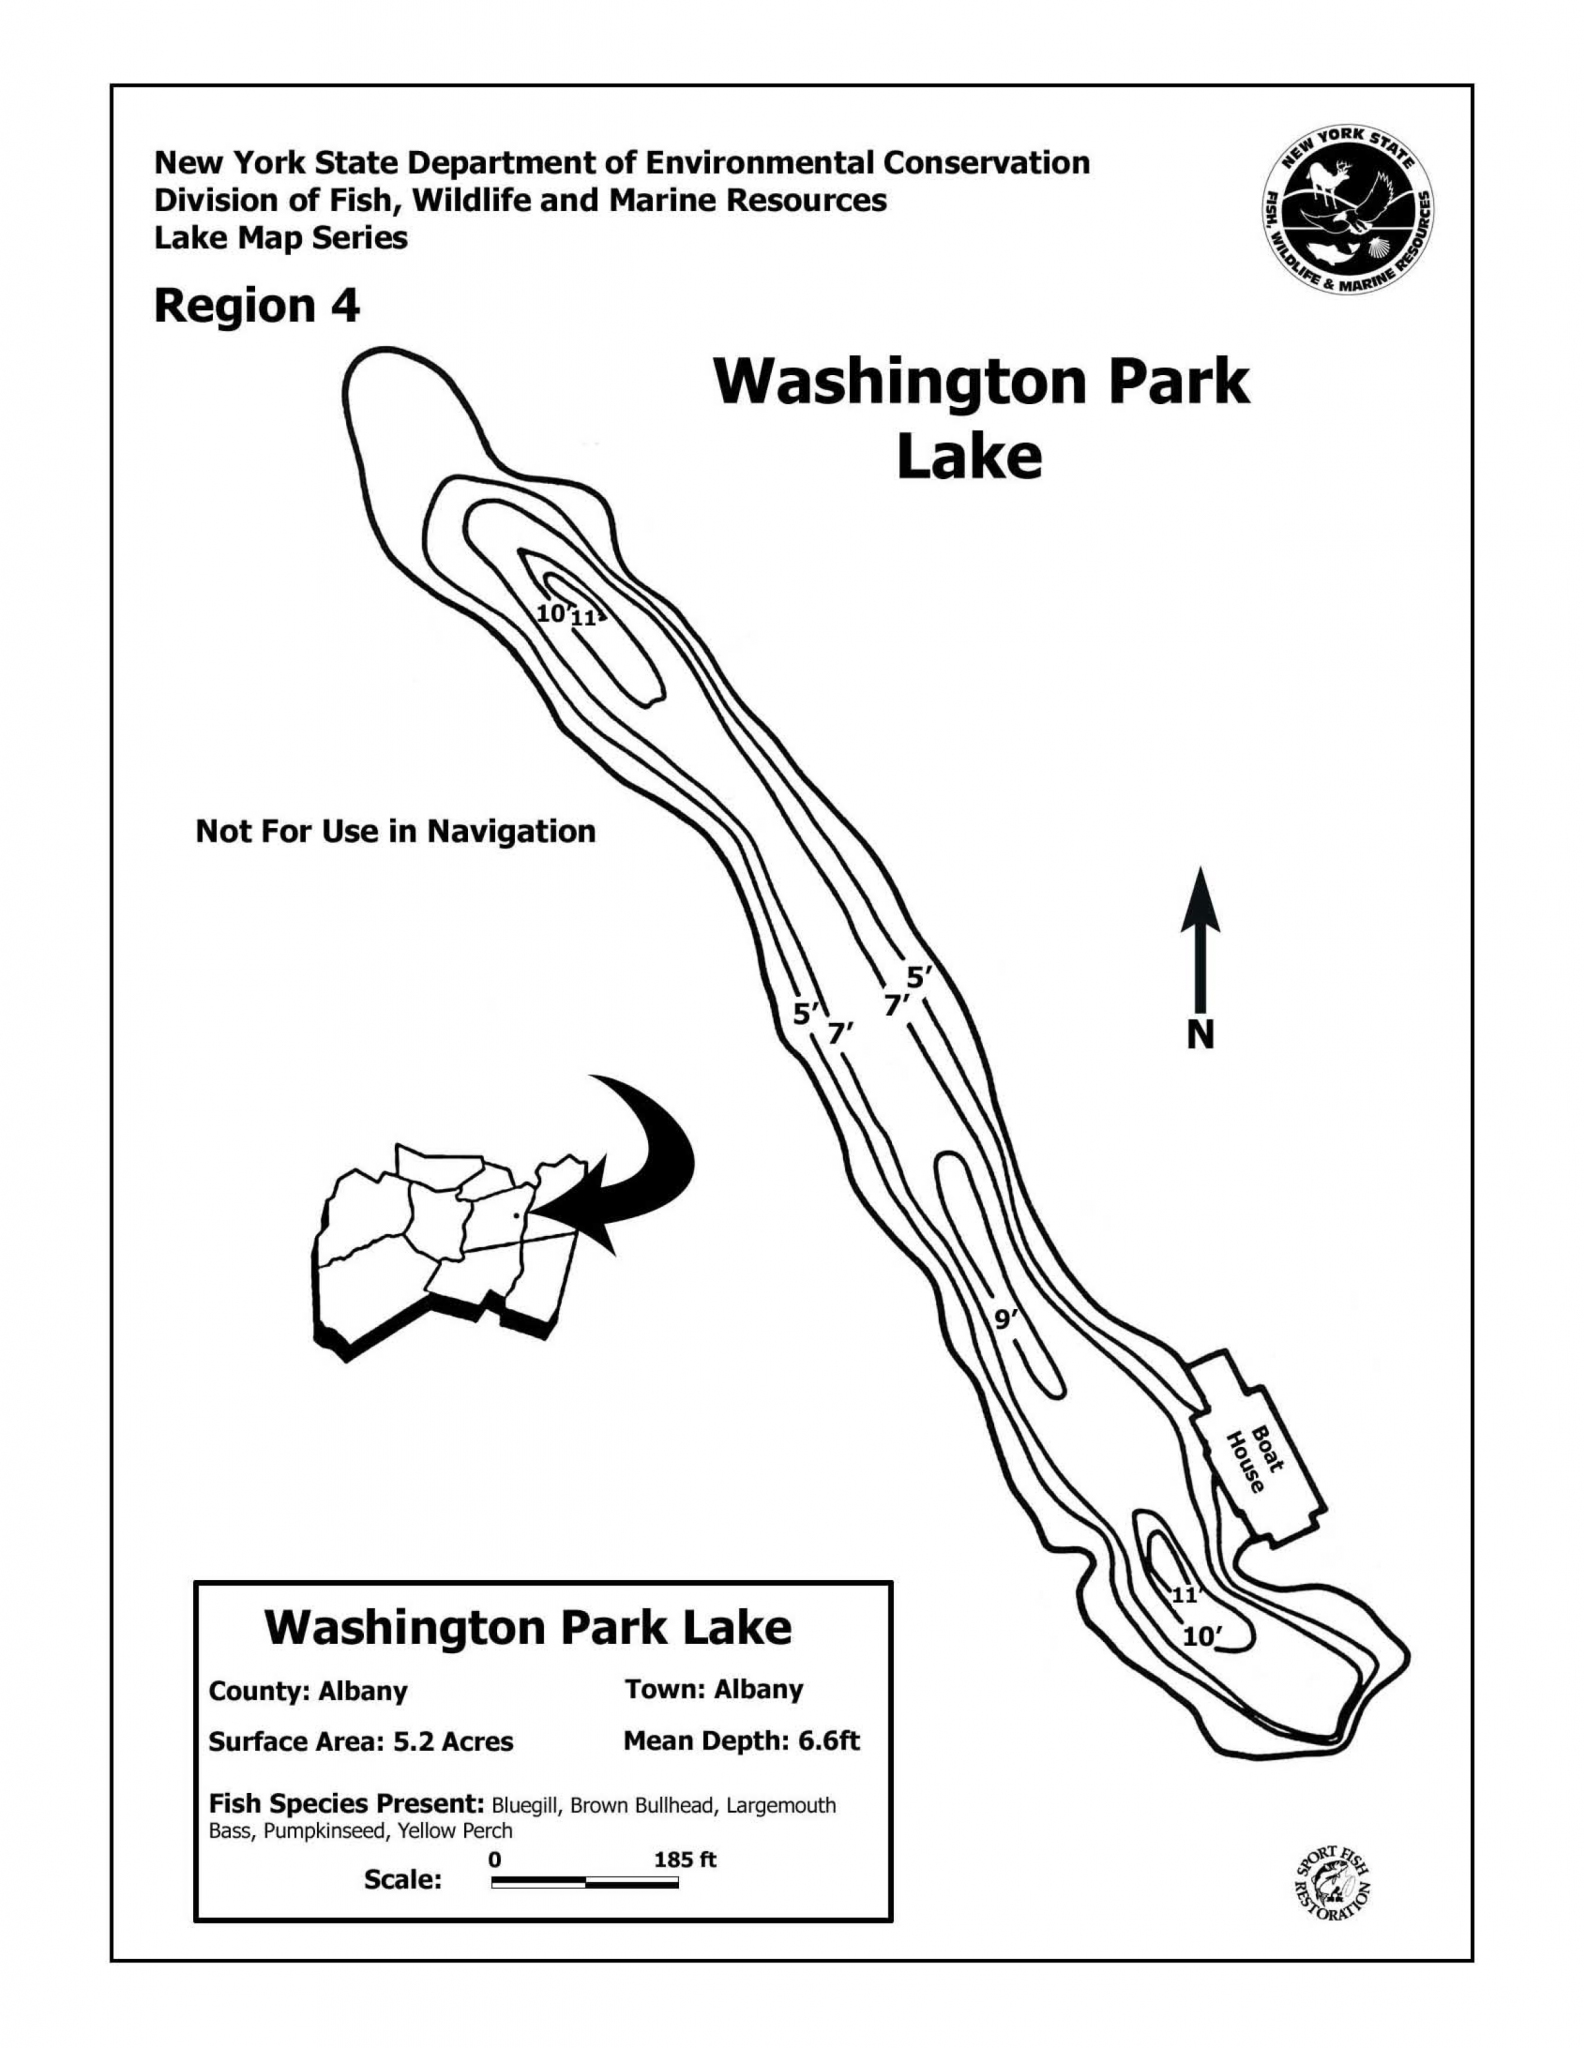 New York State Department of Environmental Conservation Washington Park Lake Map